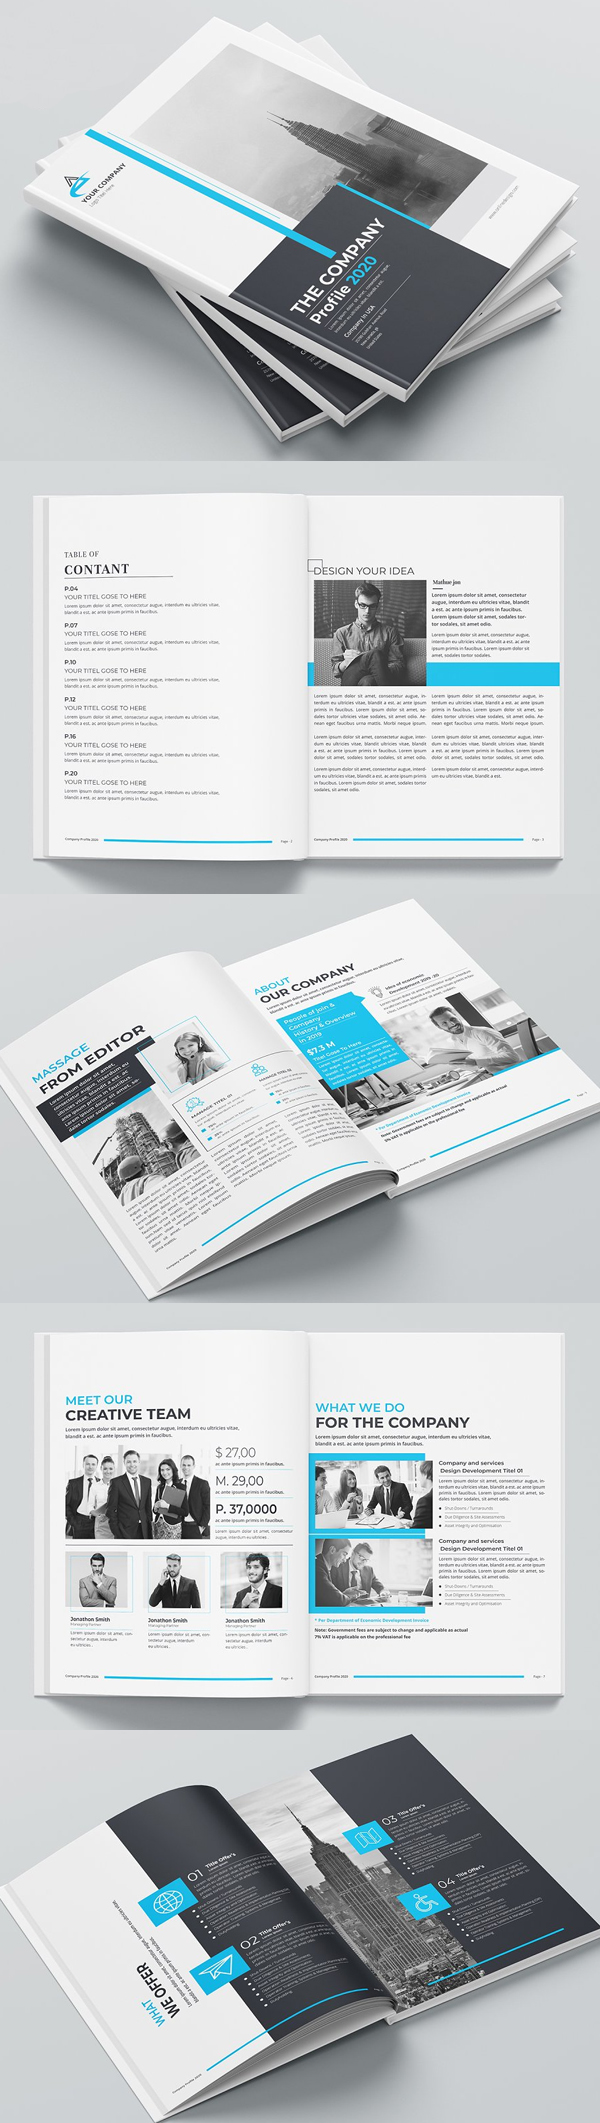 Awesome Company Profile Print Template